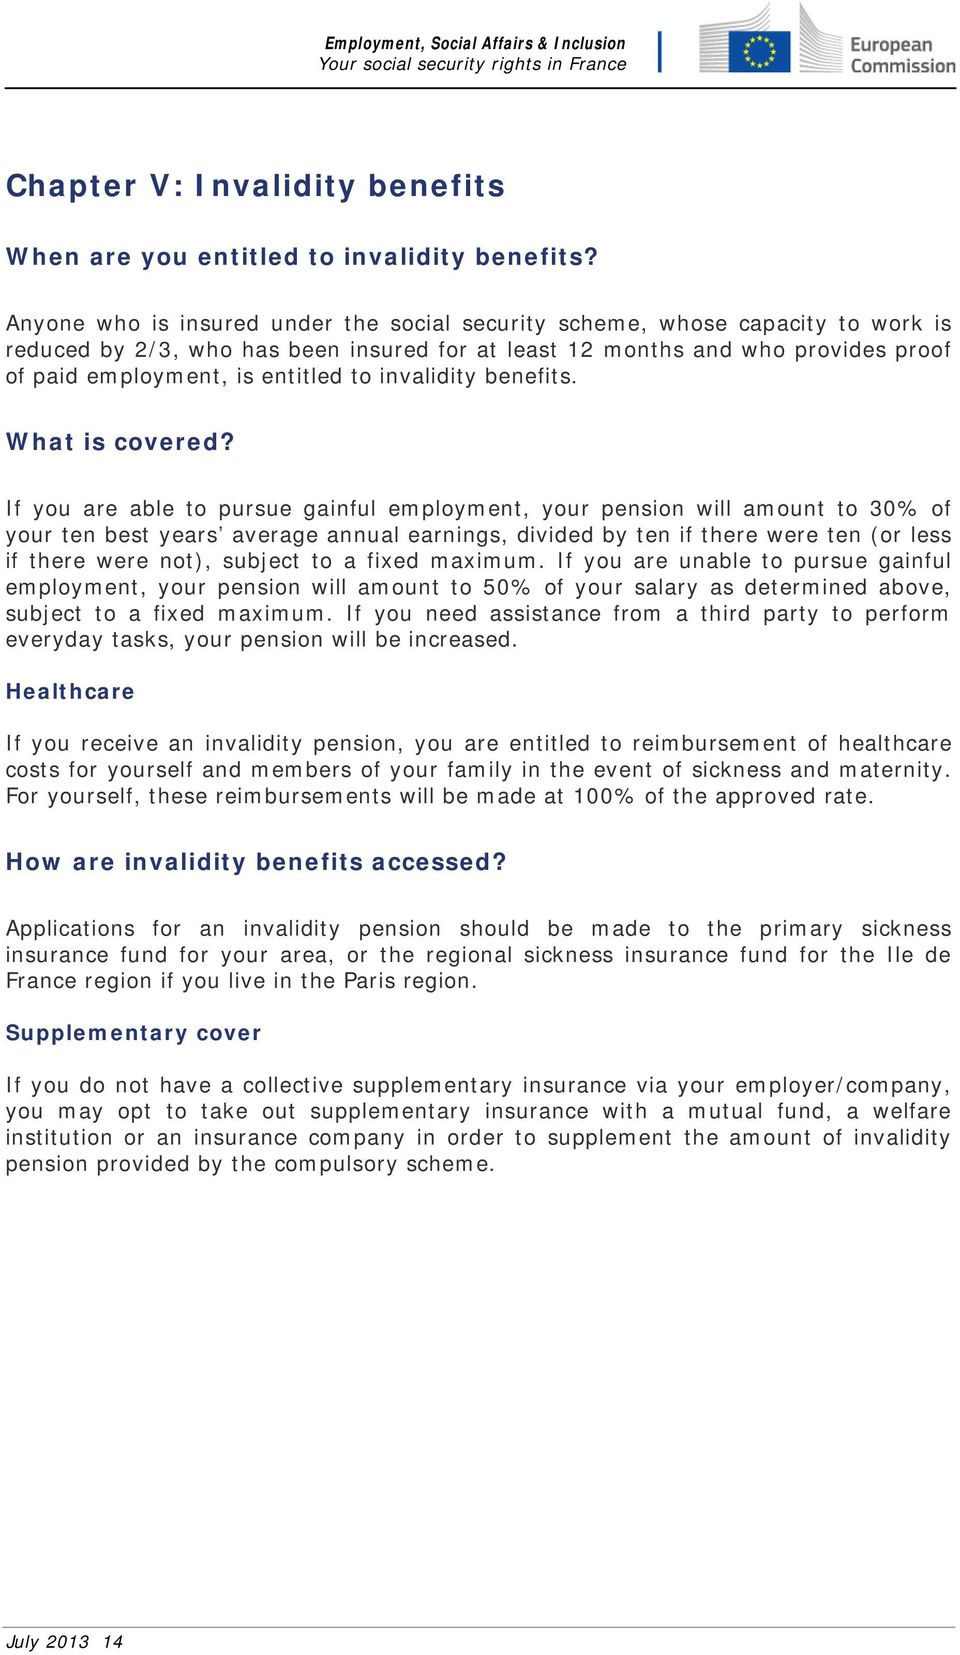 invalidity benefits. What is covered?